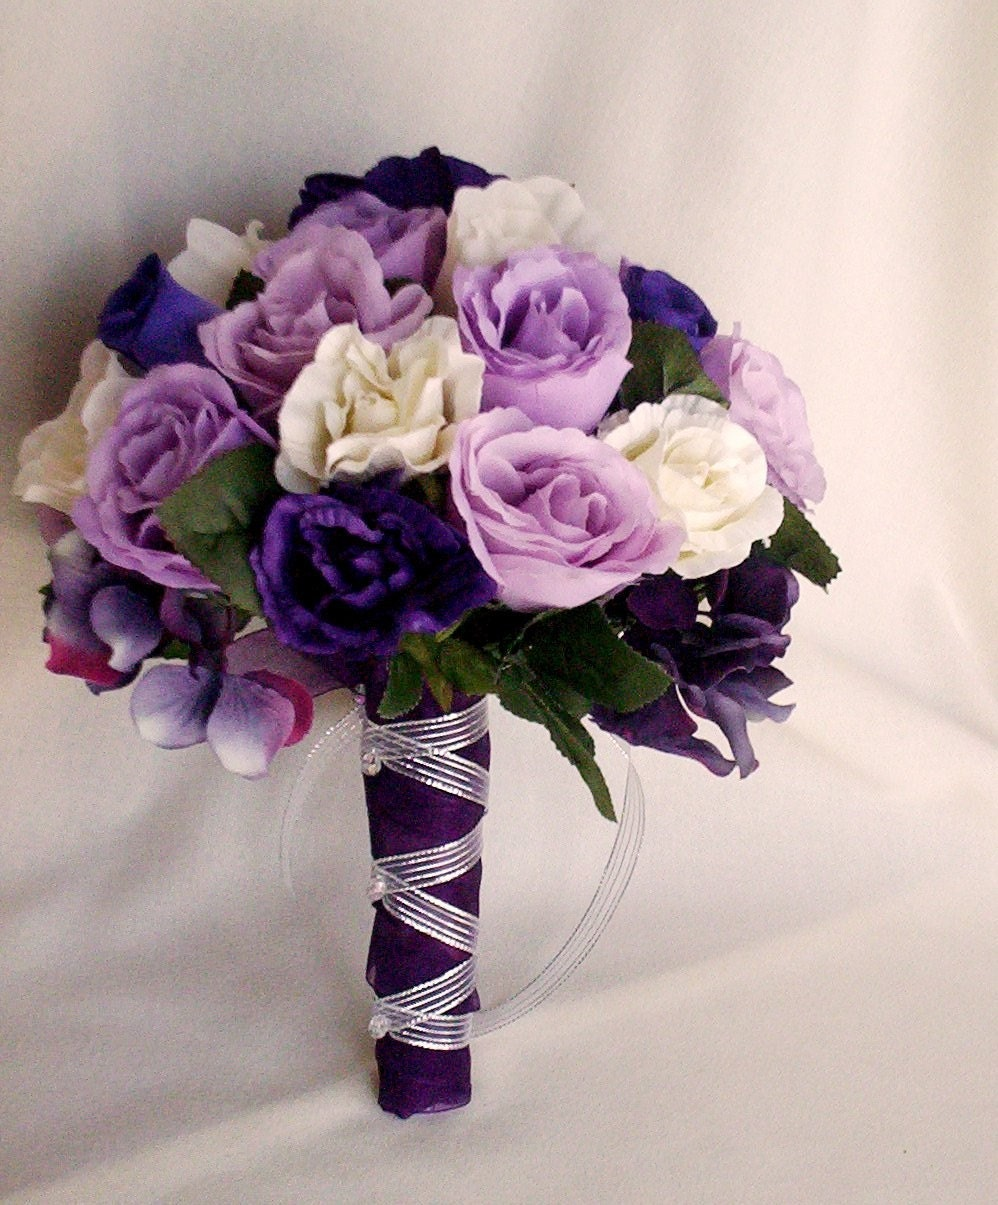 Wedding Flowers In Silk : Silk purple rose bridal bouquets package custom for helen